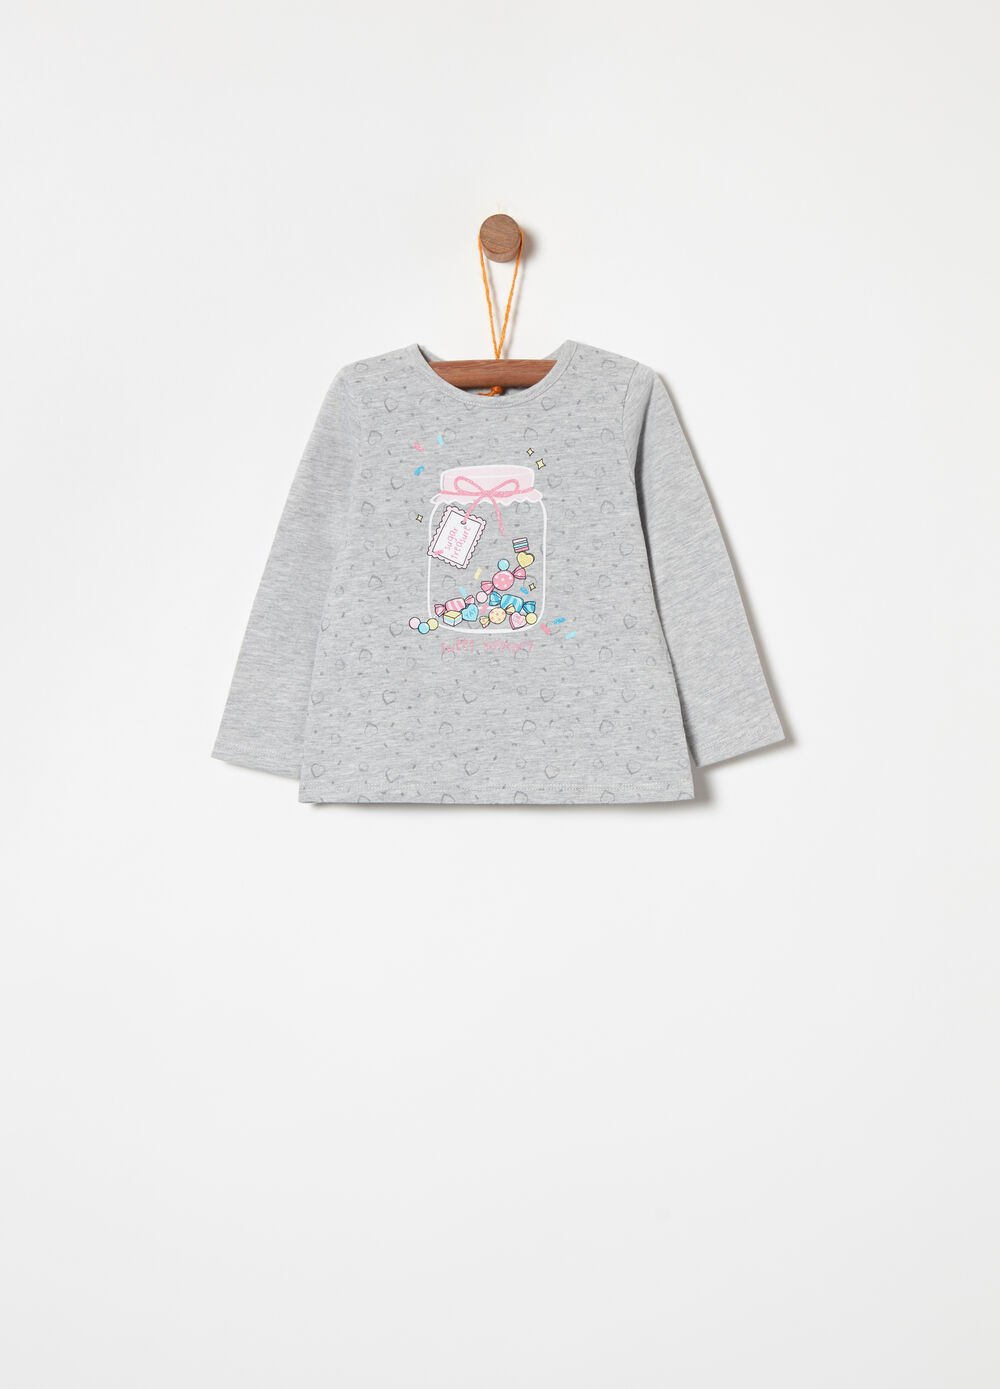 T-shirt with glitter, print and long sleeves